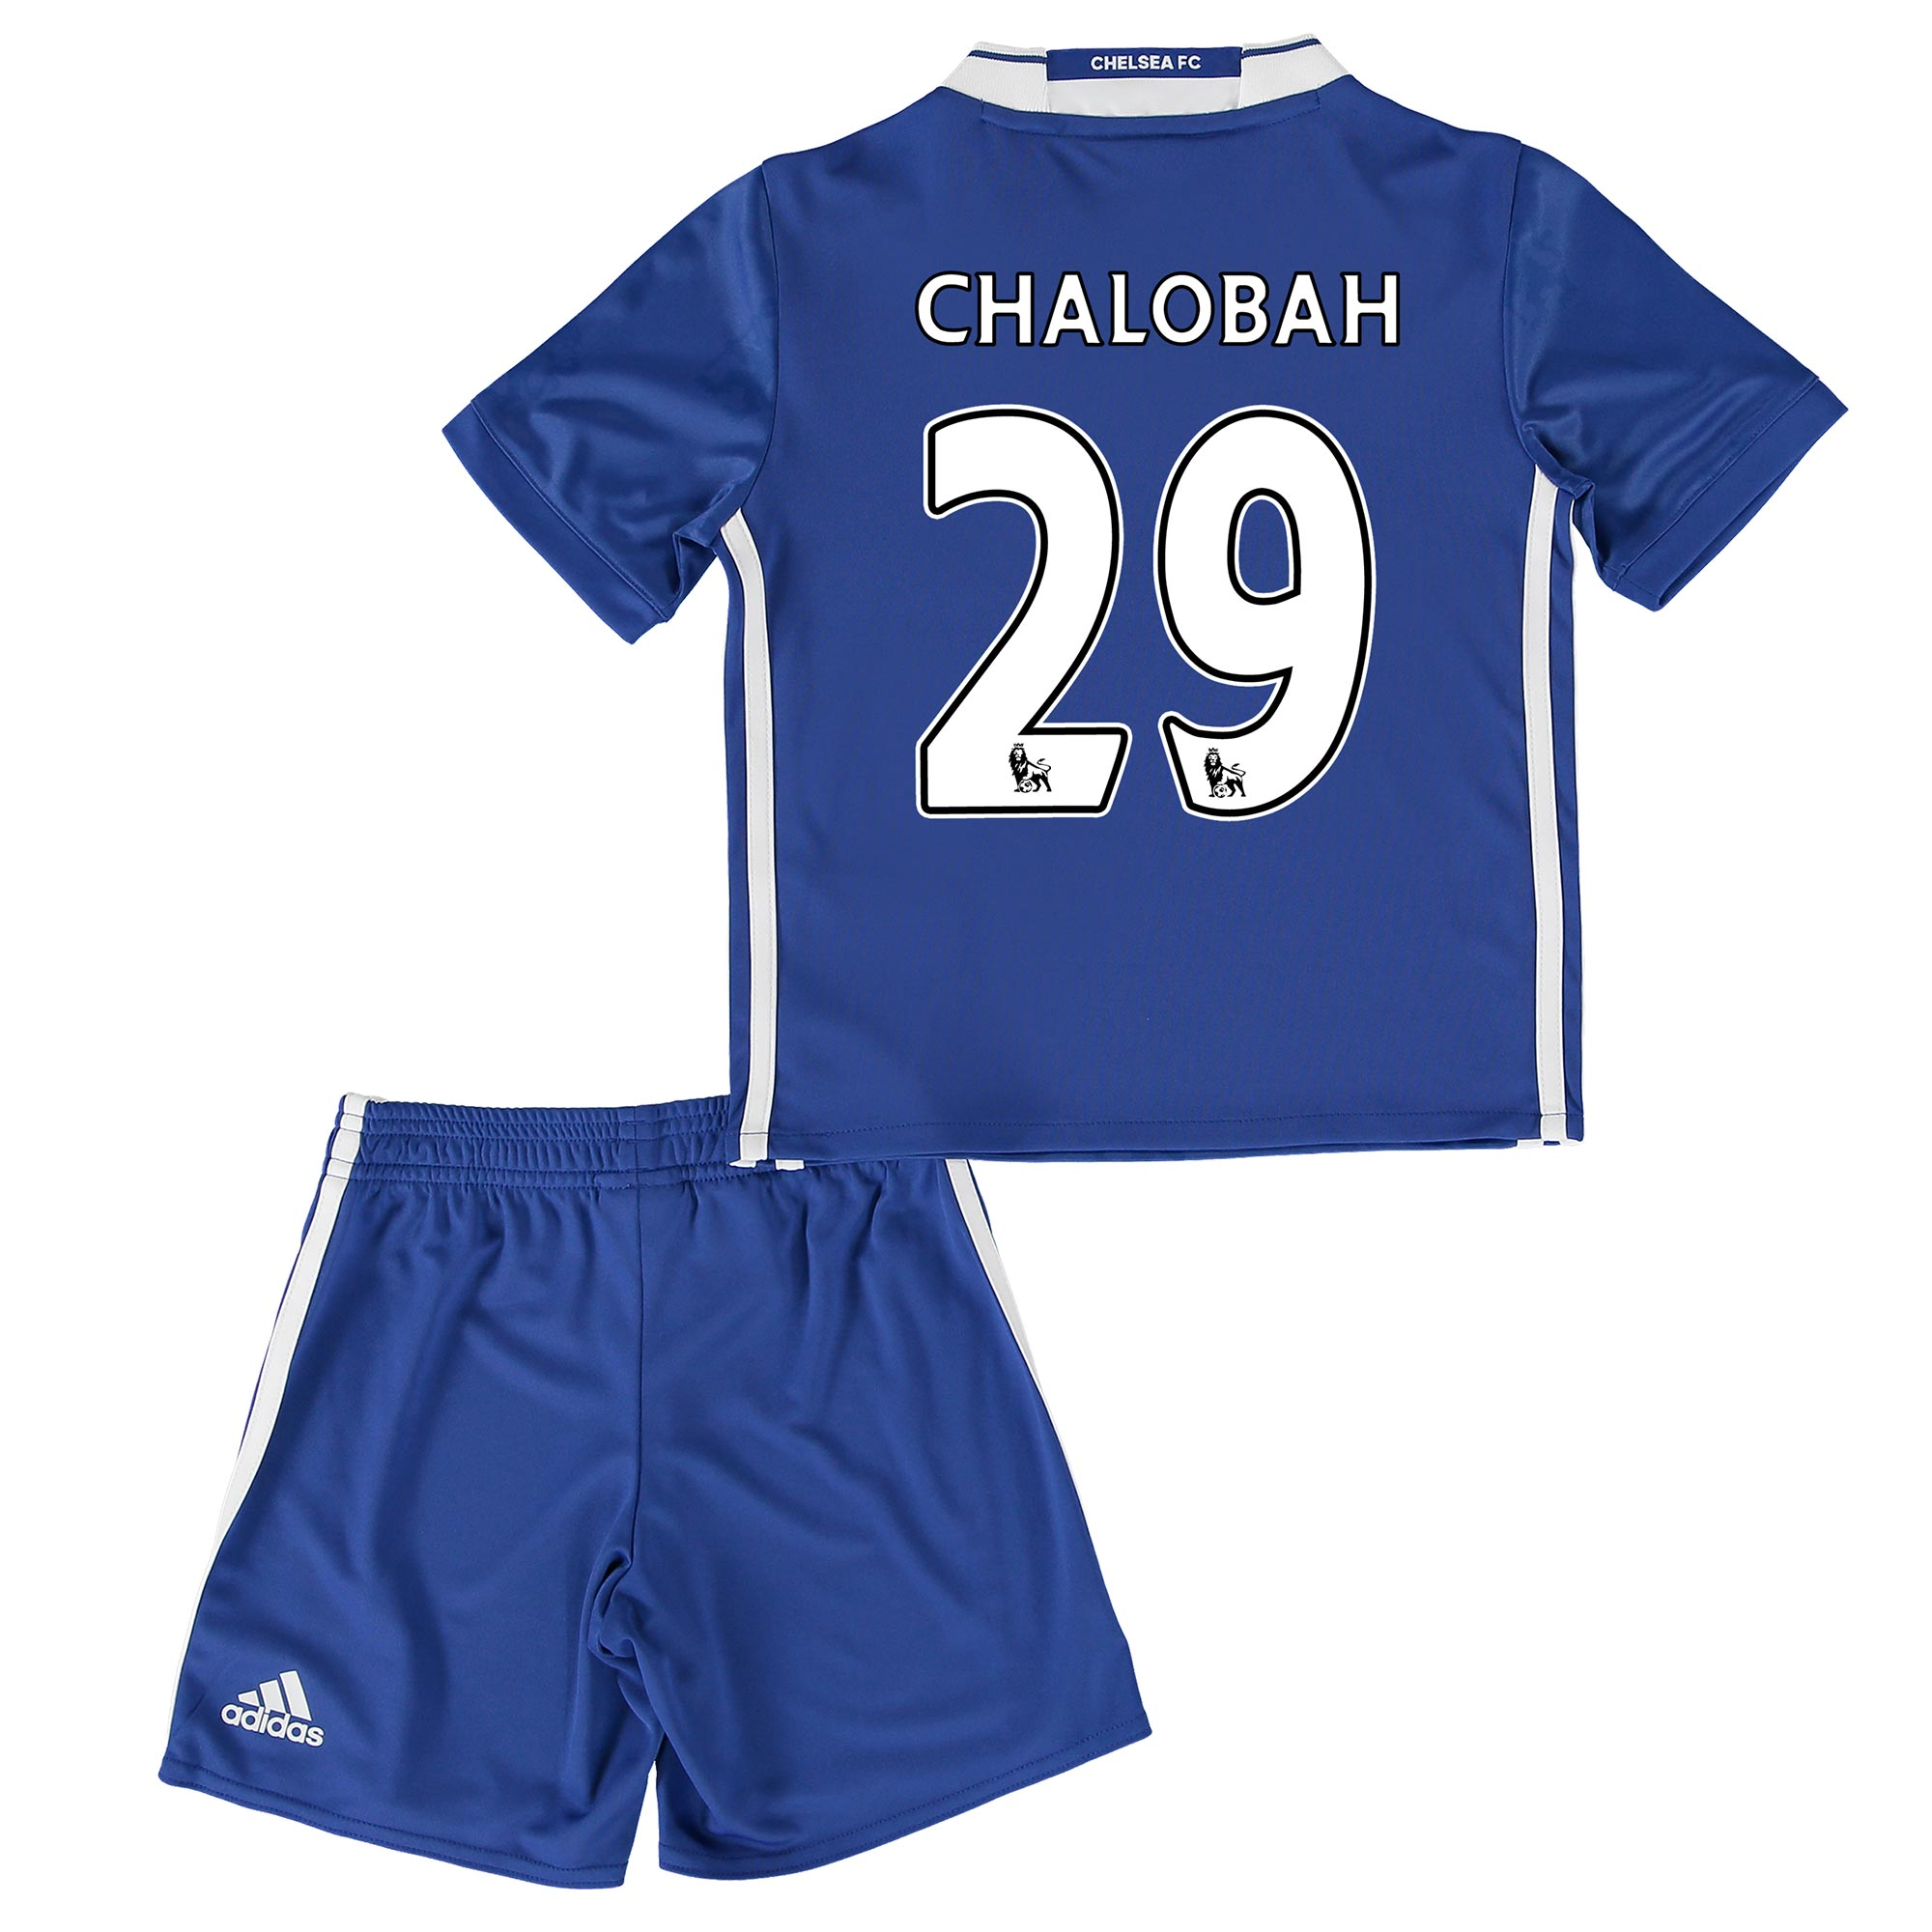 Chelsea Home Mini Kit 2016-17 with Chalobah 29 printing